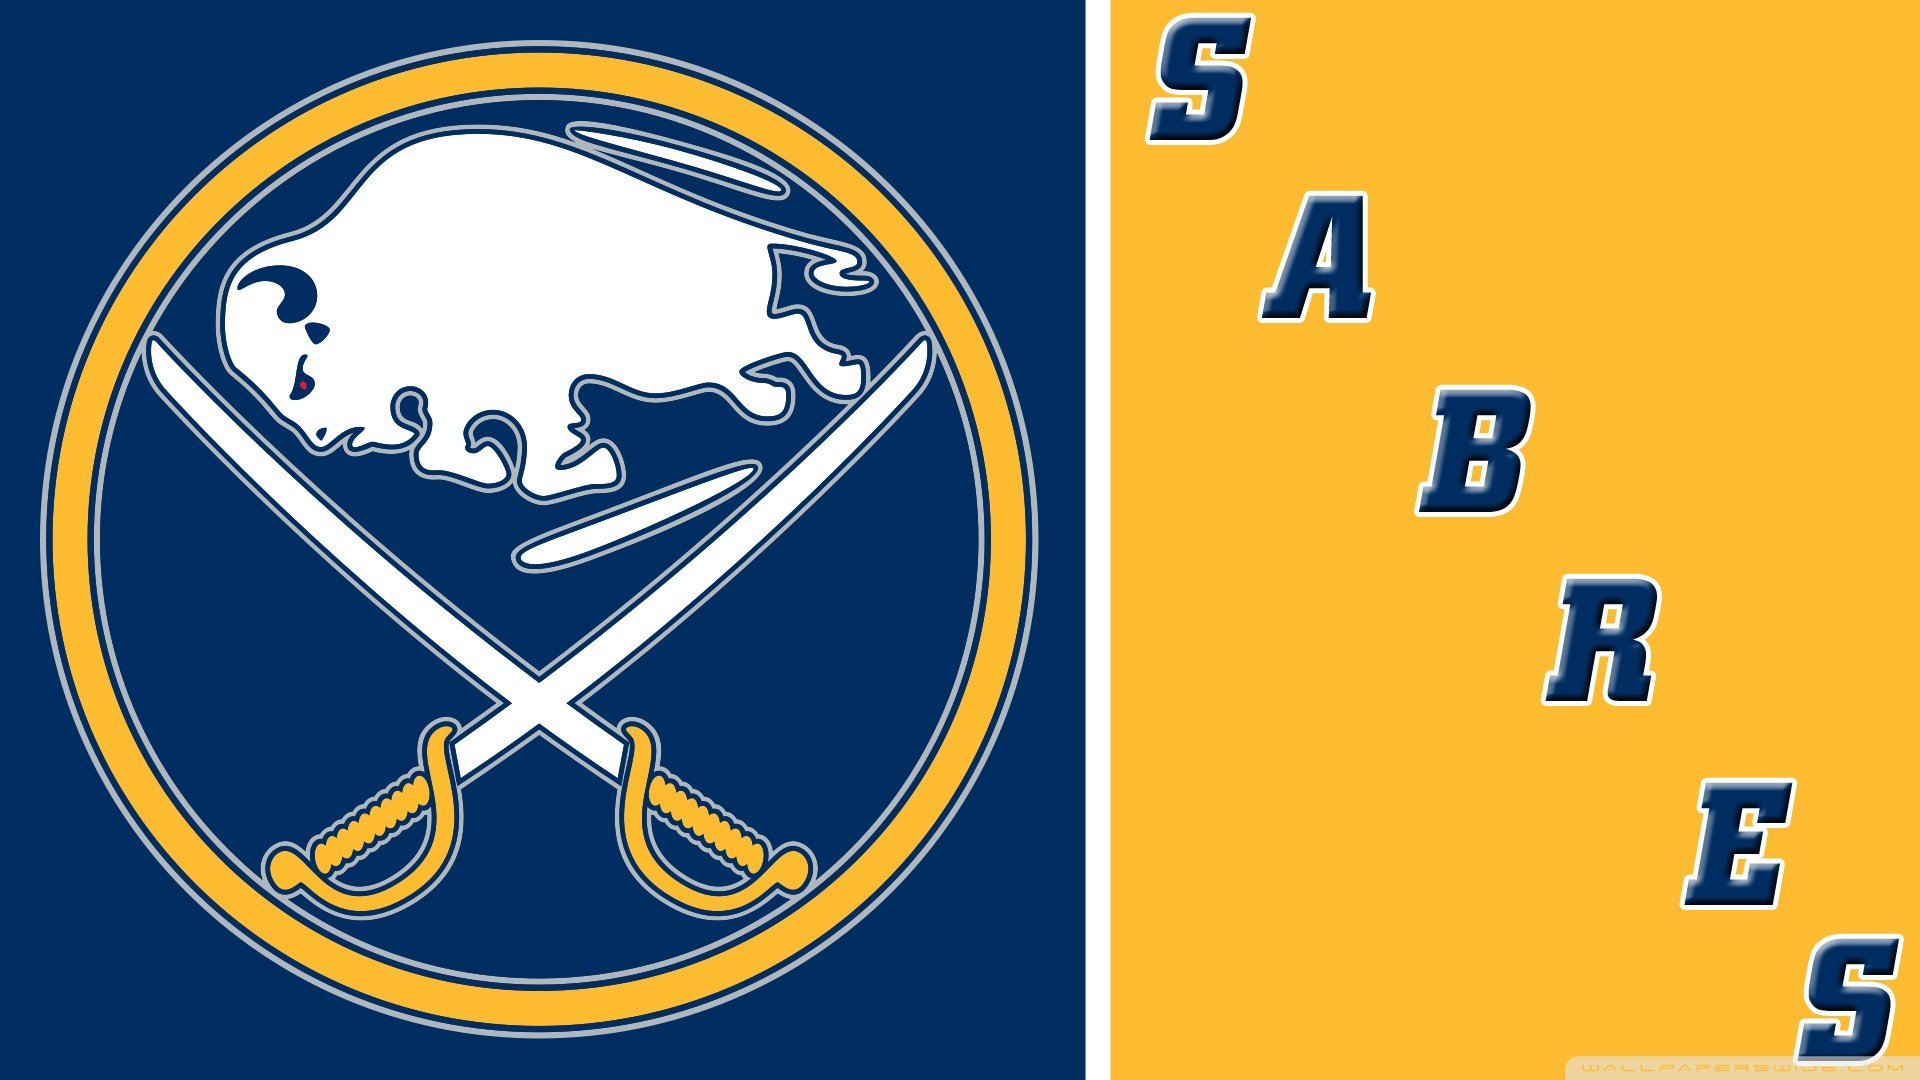 BUFFALO SABRES nhl hockey 75 wallpaper 1920x1080 1920x1080